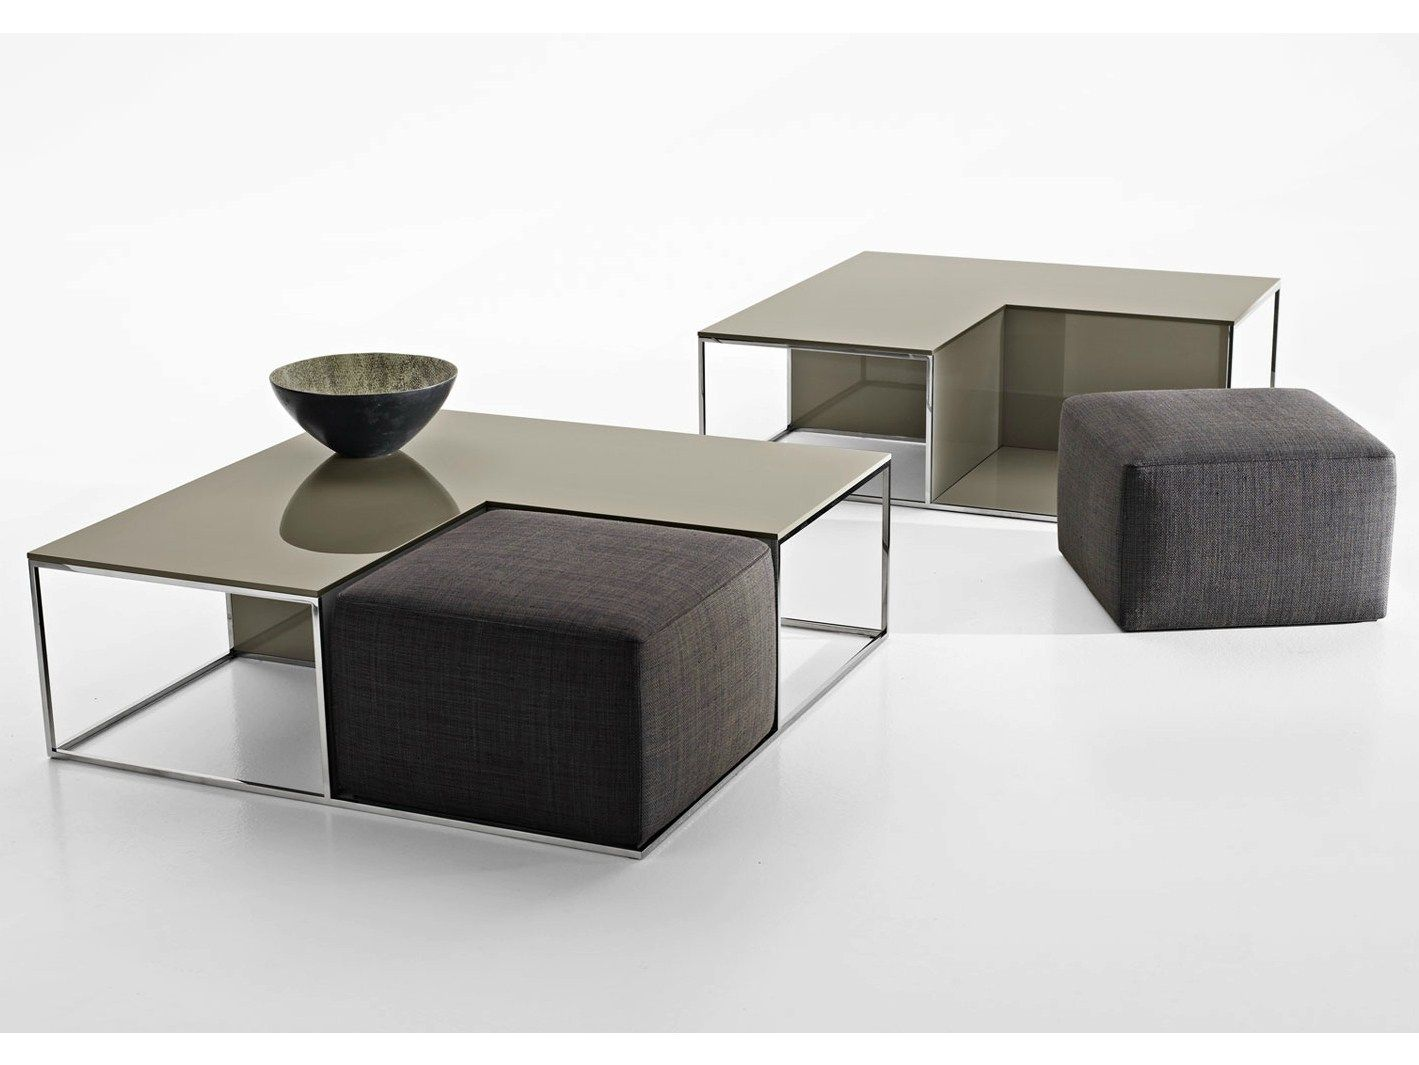 coffee table with poufs - Google Search | Omar\'s studio ...